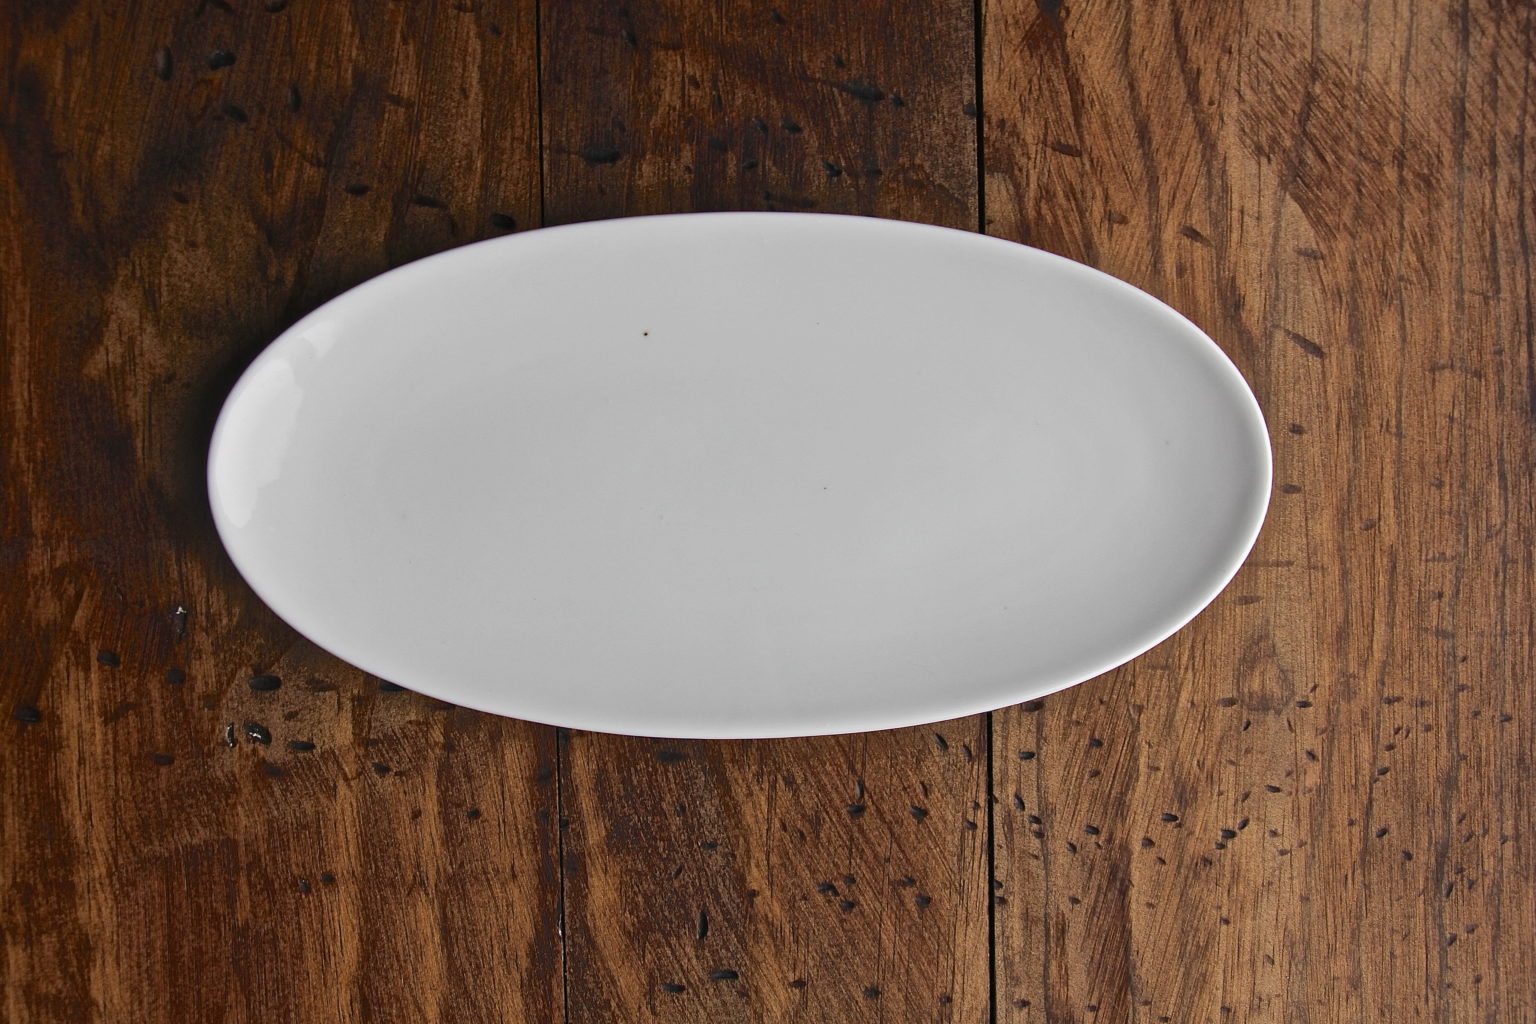 White Oval Coupe Cocktail Plate Table Manners